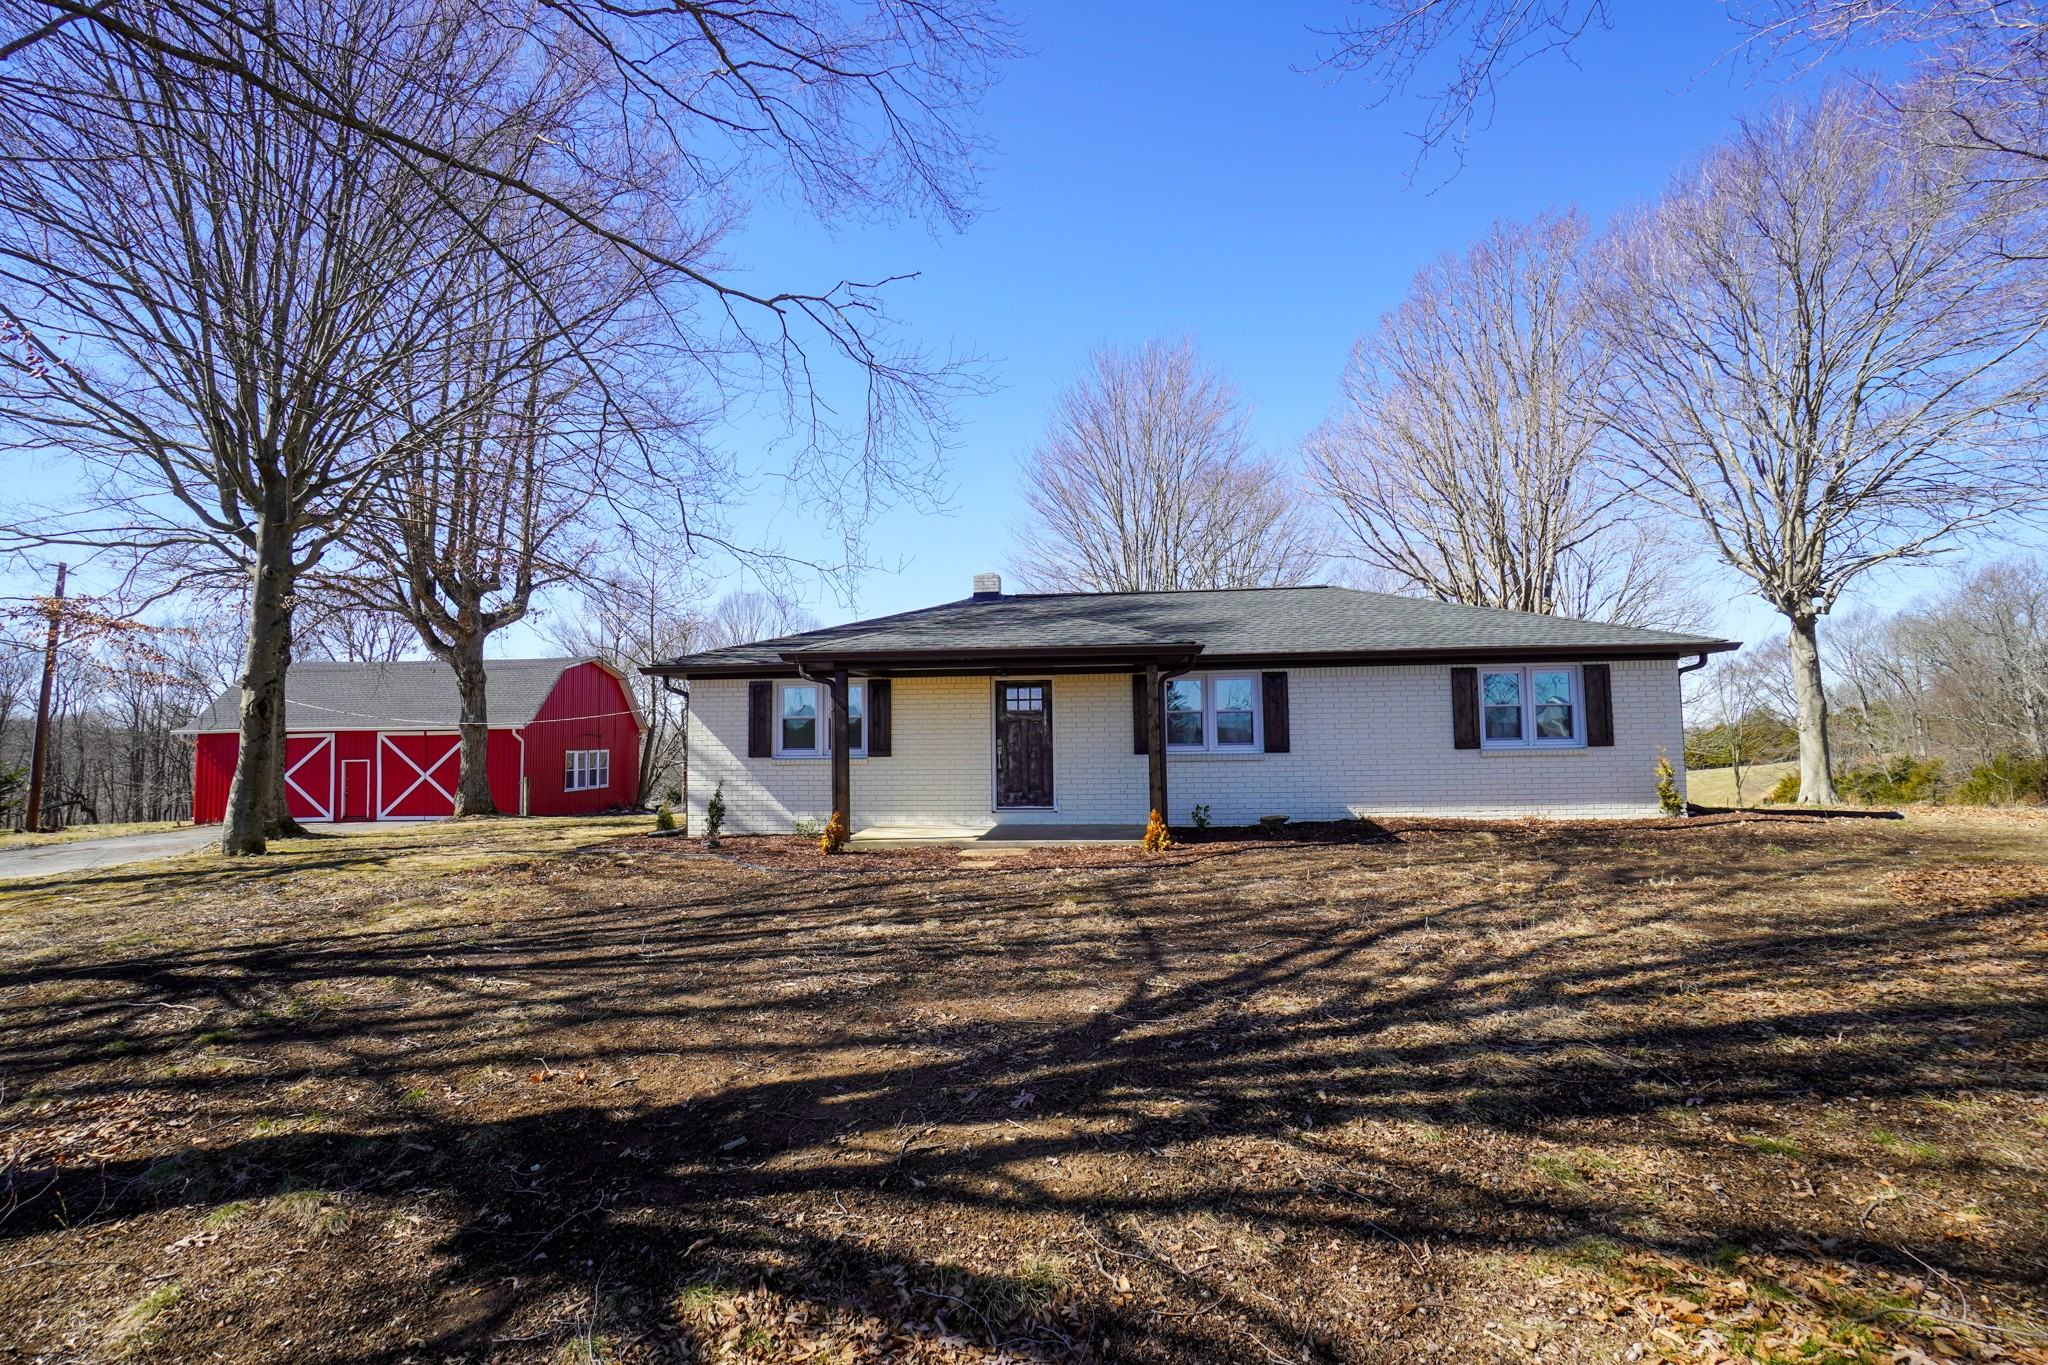 59 W Stinson Rd Property Photo - Westmoreland, TN real estate listing